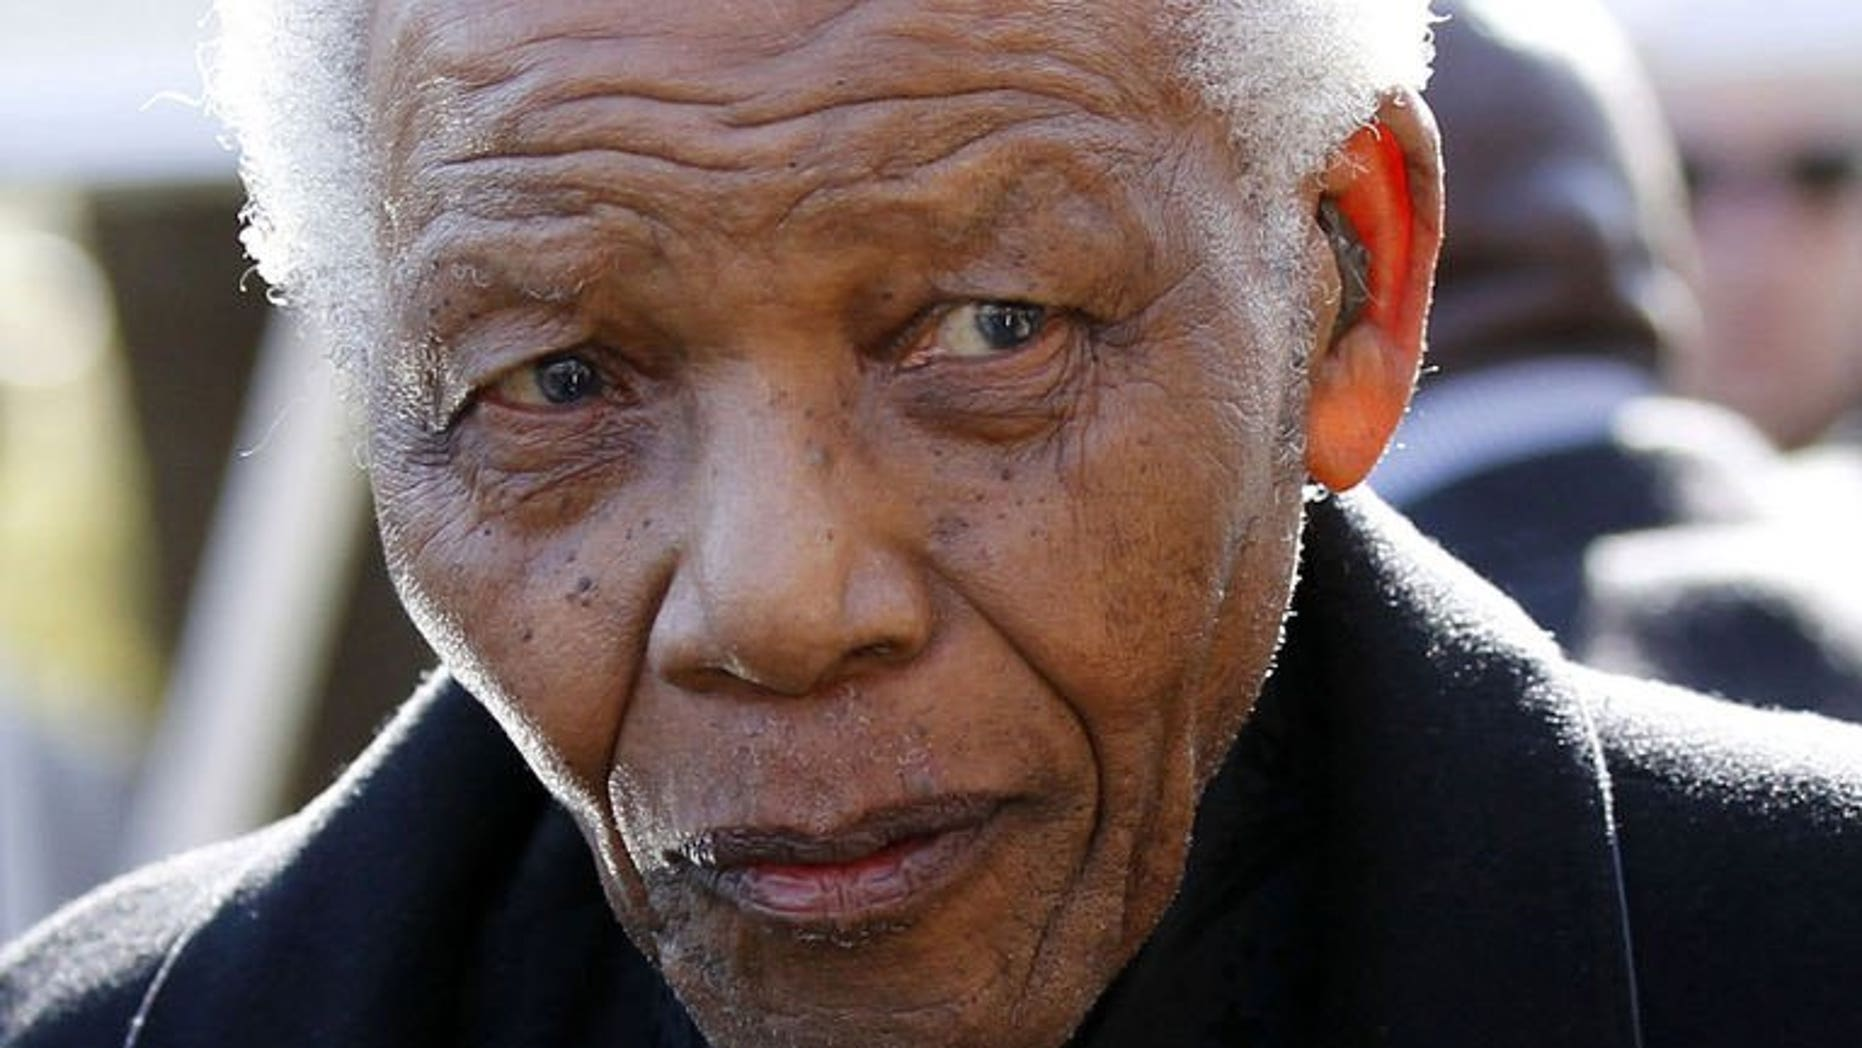 Former South African President Nelson Mandela is pictured in Sandton, north of Johannesburg on June 17, 2010. Authorities have admitted they had mistakenly delivered a utilities bill to Mandela's upmarket home and threatened to cut the icon's water and electricity supply.